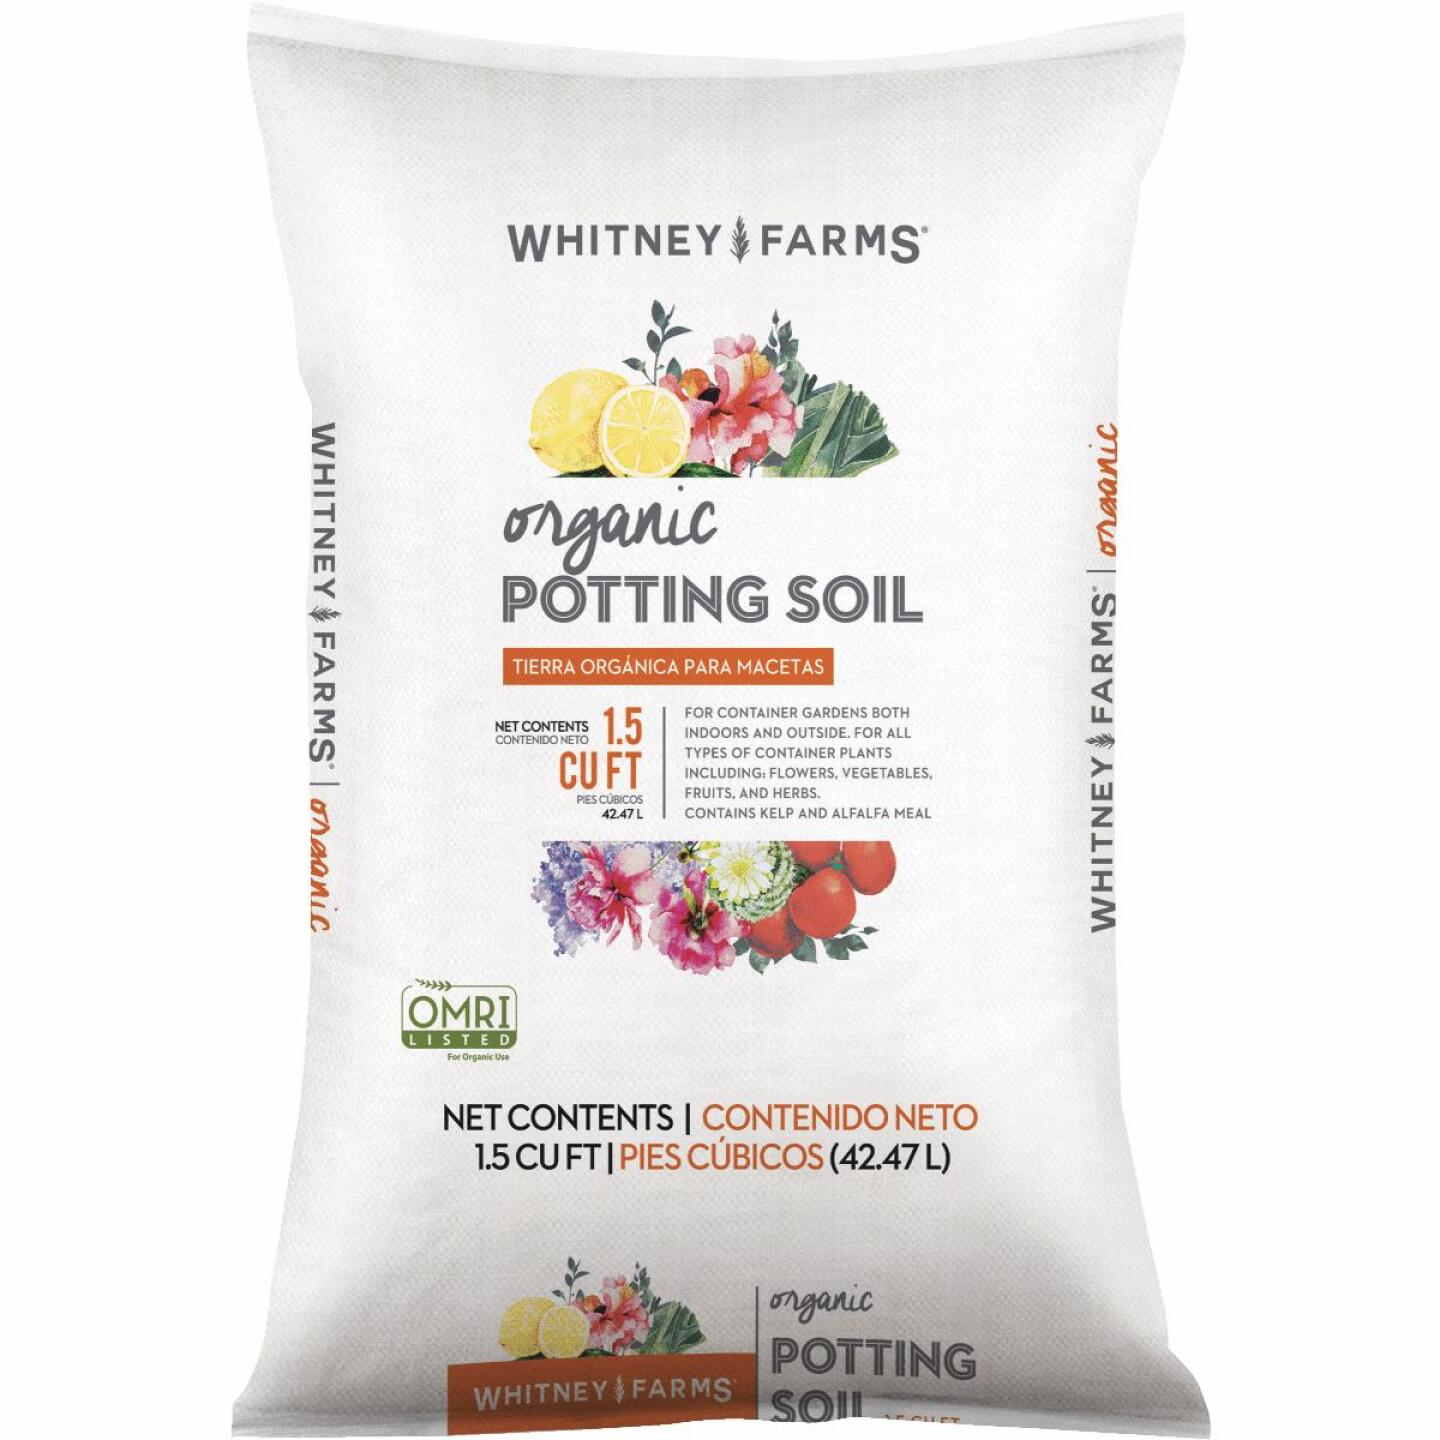 Whitney Farms 1.5 Cu. Ft. 18-1/2 Lb. All Purpose Organic Potting Soil Image 1